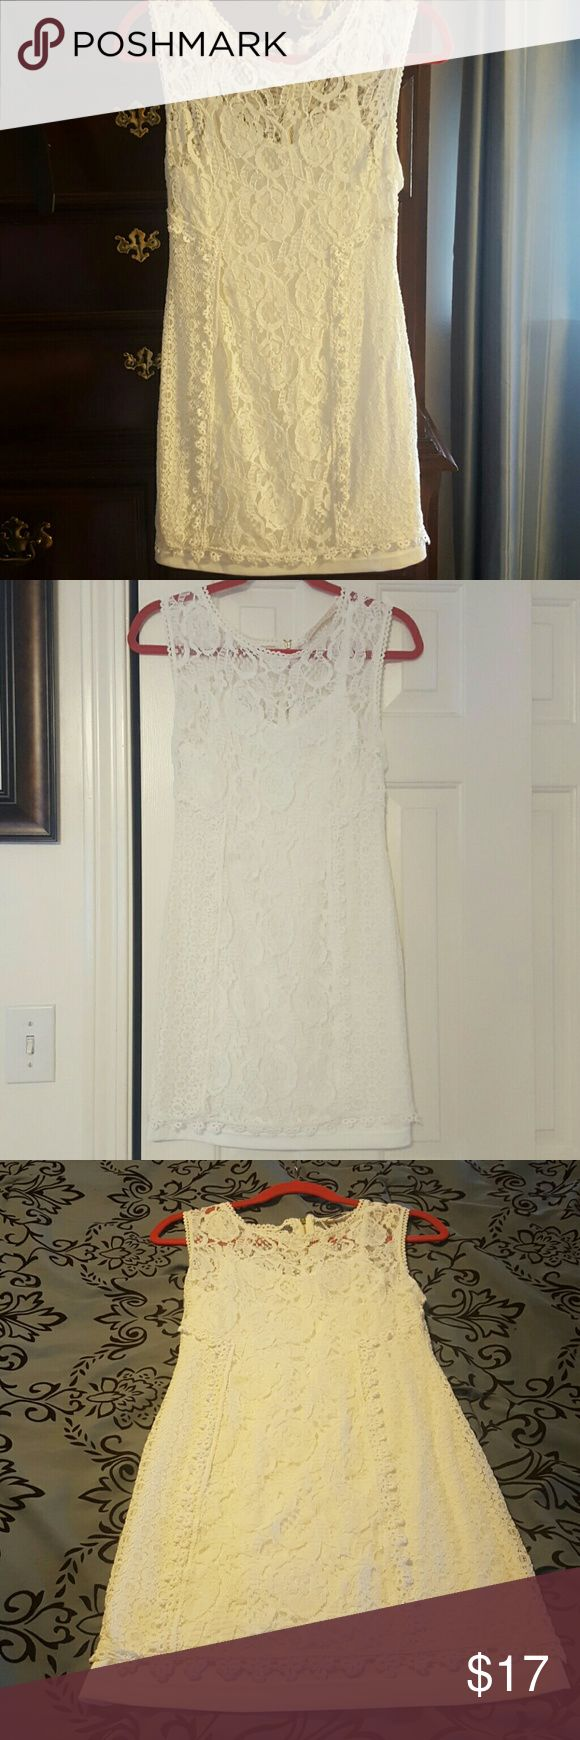 Beautiful lace overlay dress White lace dress with attached tank slip with tiny spot discoloration (pointed out in pic) barely noticeable malloy Dresses Midi